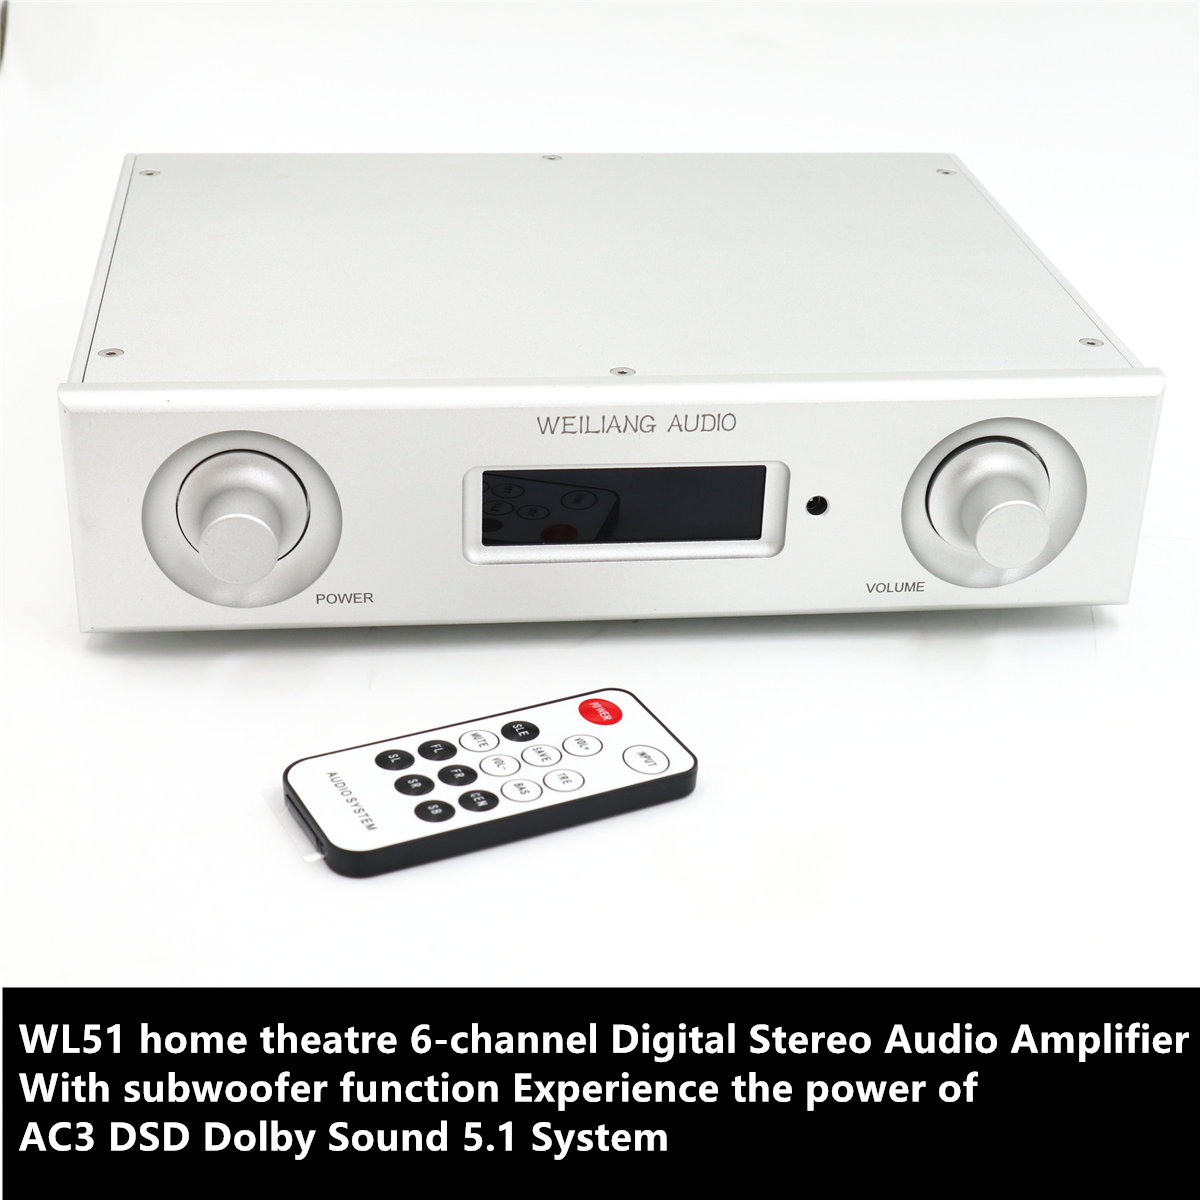 TIANCOOLKEI WL51 6 channel Digital Stereo Audio Amplifier Experience the power of AC3 DSD Dolby Sound